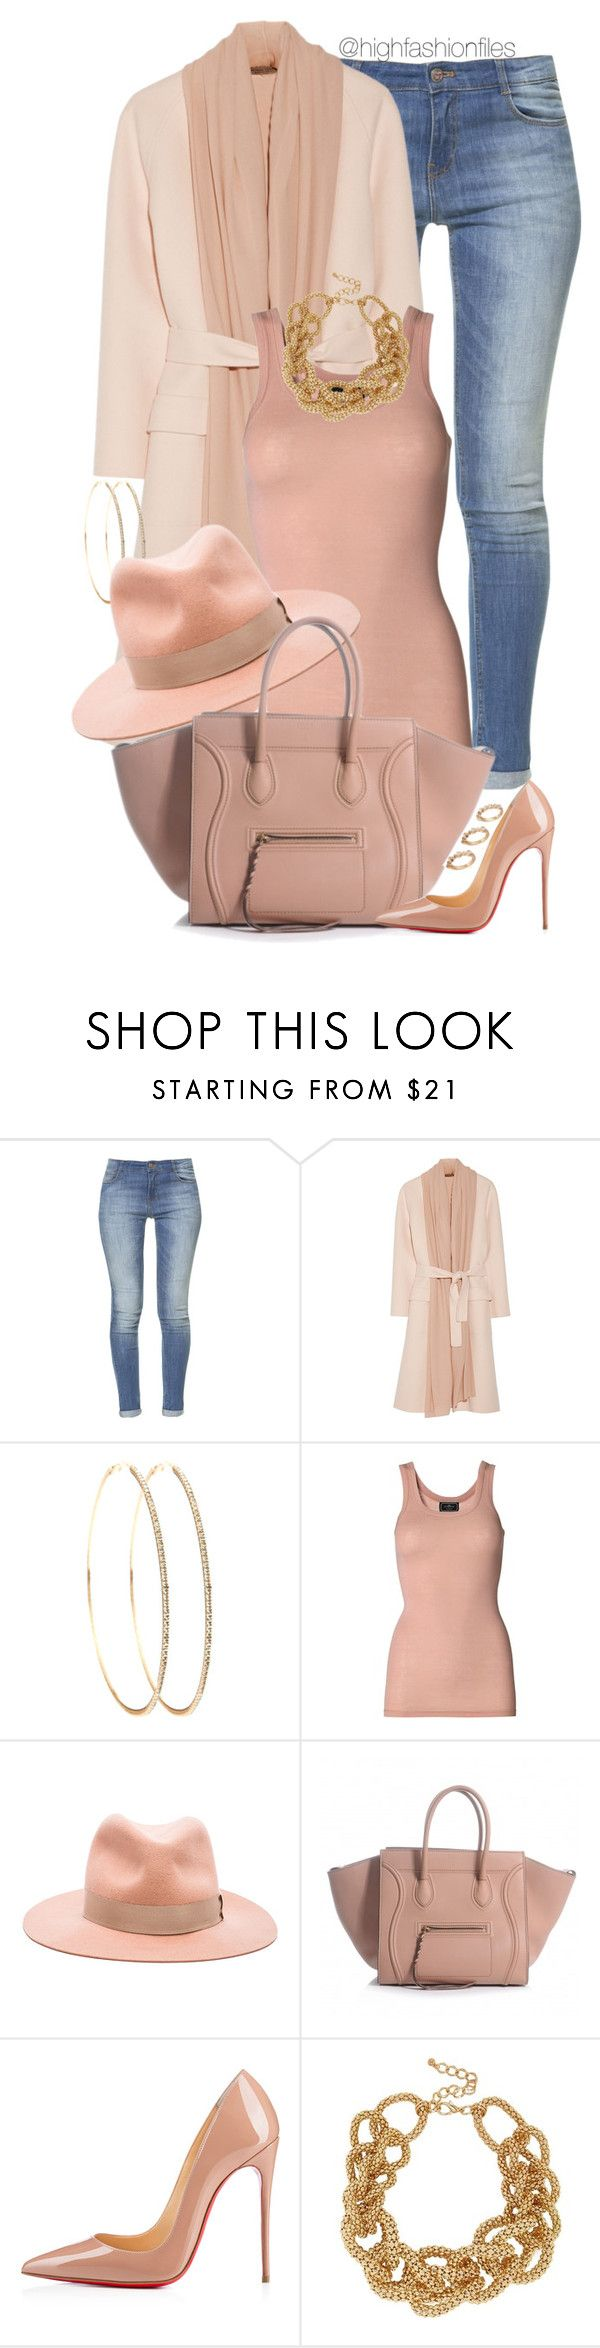 """!"" by highfashionfiles ❤ liked on Polyvore featuring Zara, Bottega Veneta, By Malene Birger, rag & bone, Christian Louboutin, River Island and ASOS"